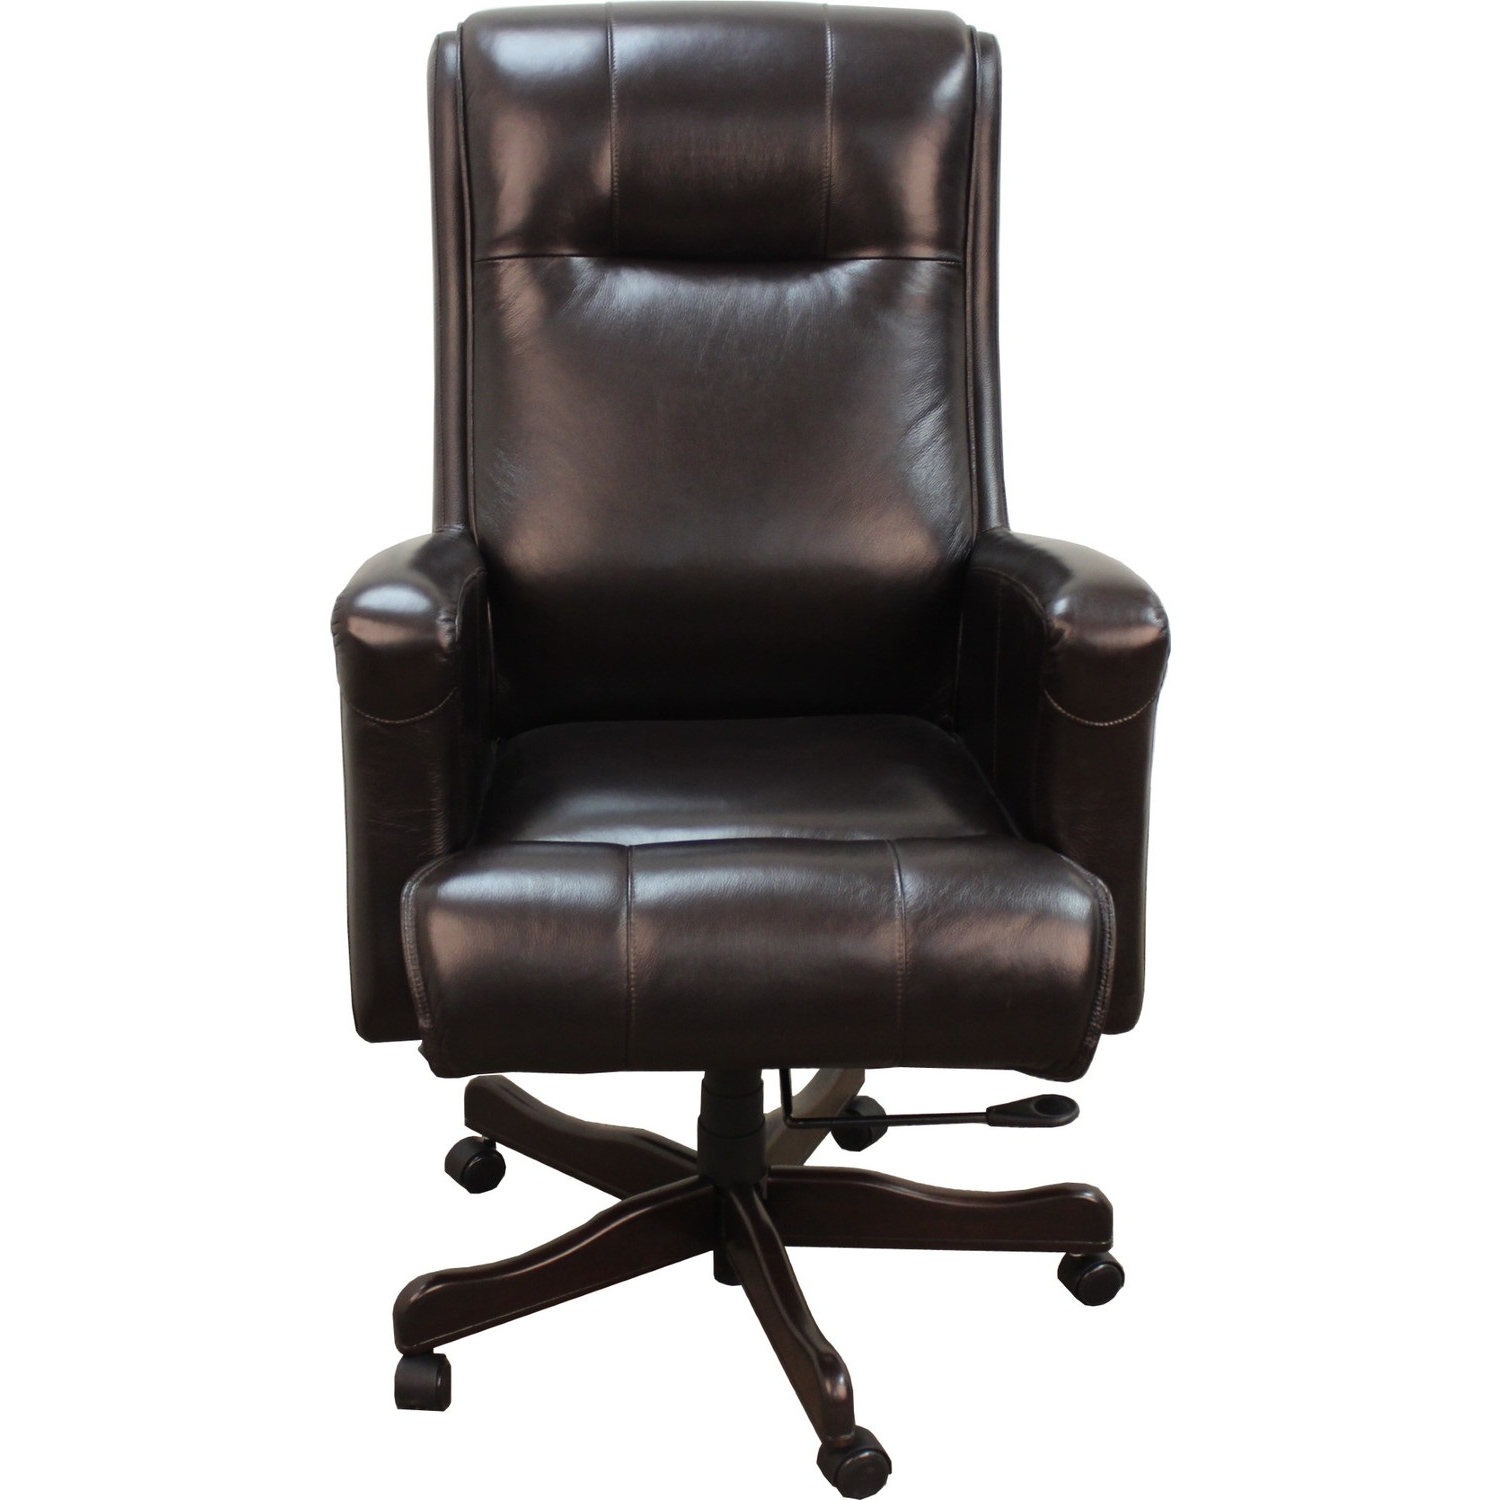 desk chair brown leather ergonomic kneeling 20 inspirations of executive office chairs flash furniture high back throughout best and newest